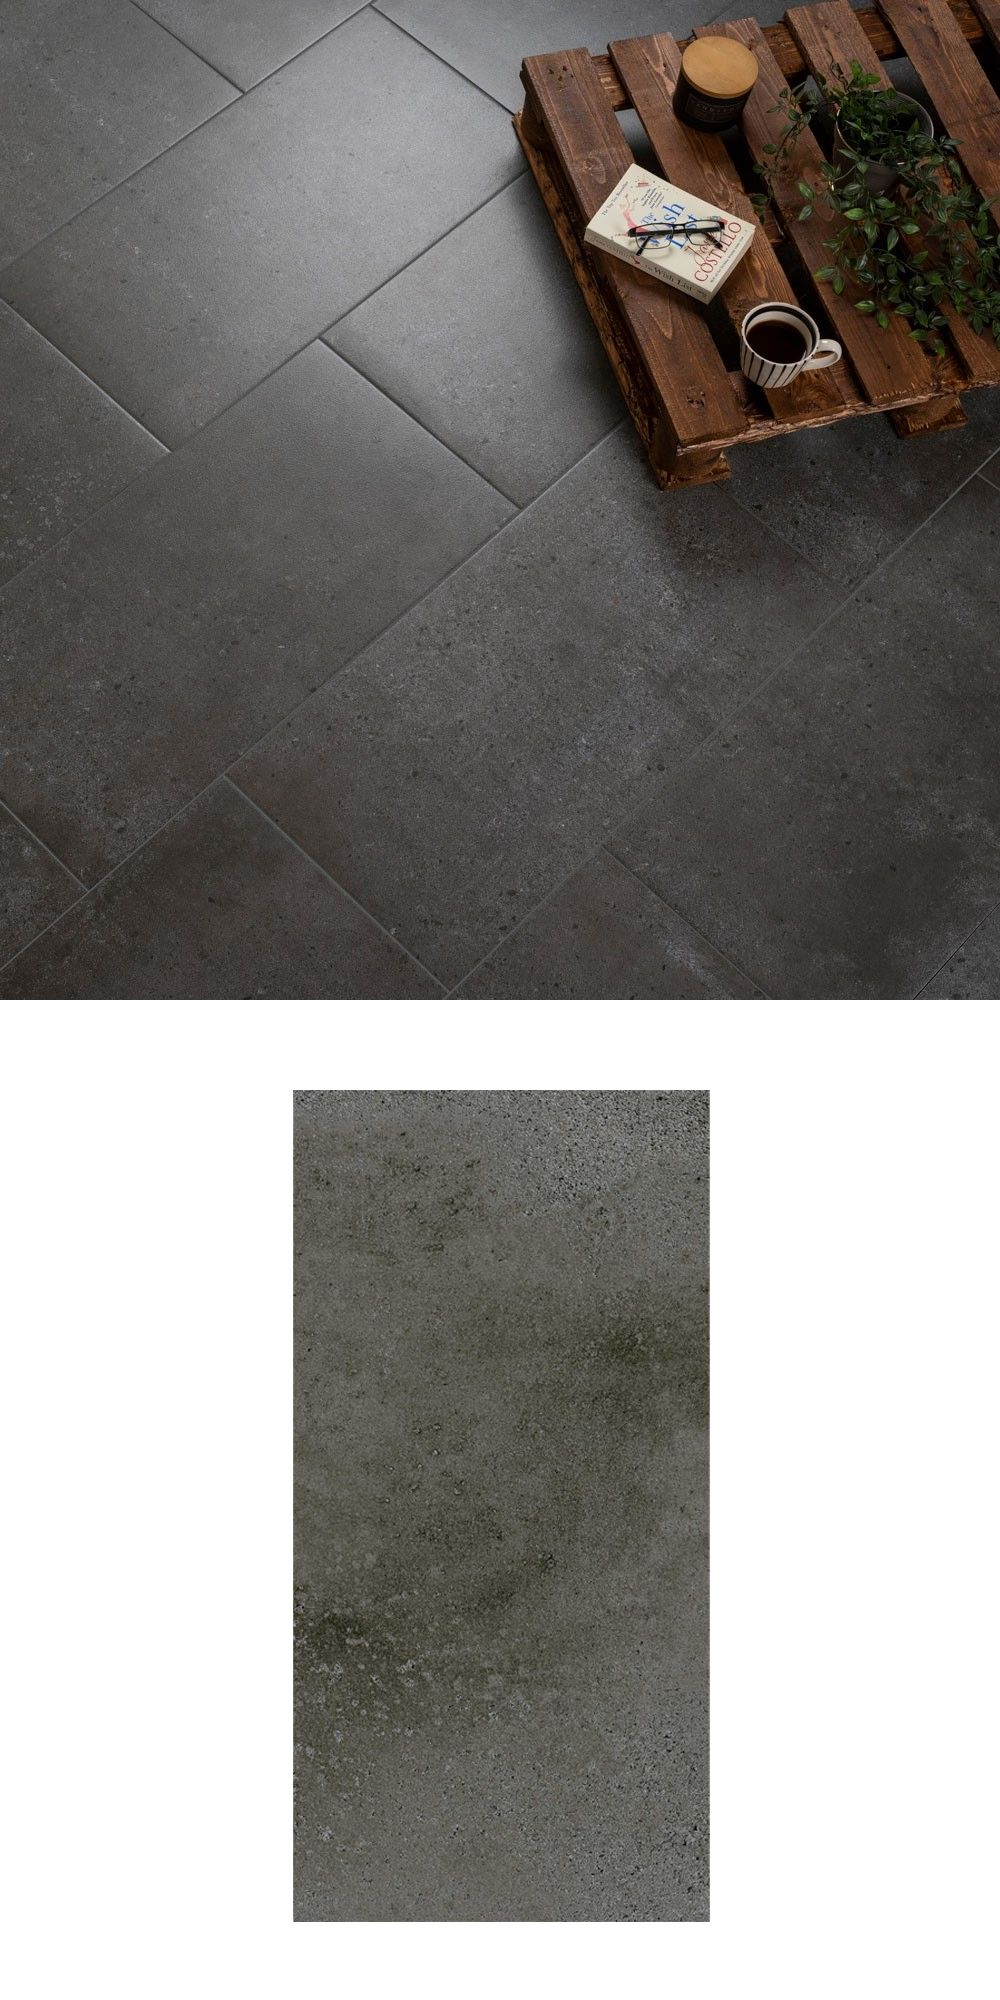 Inspired By Natural Limestone These Harrogate Coal Tiles Mimic Flecks Of Fossils And Intricate Shales They Re Ideal For Wall Tile Adhesive Tiles Tiles Price